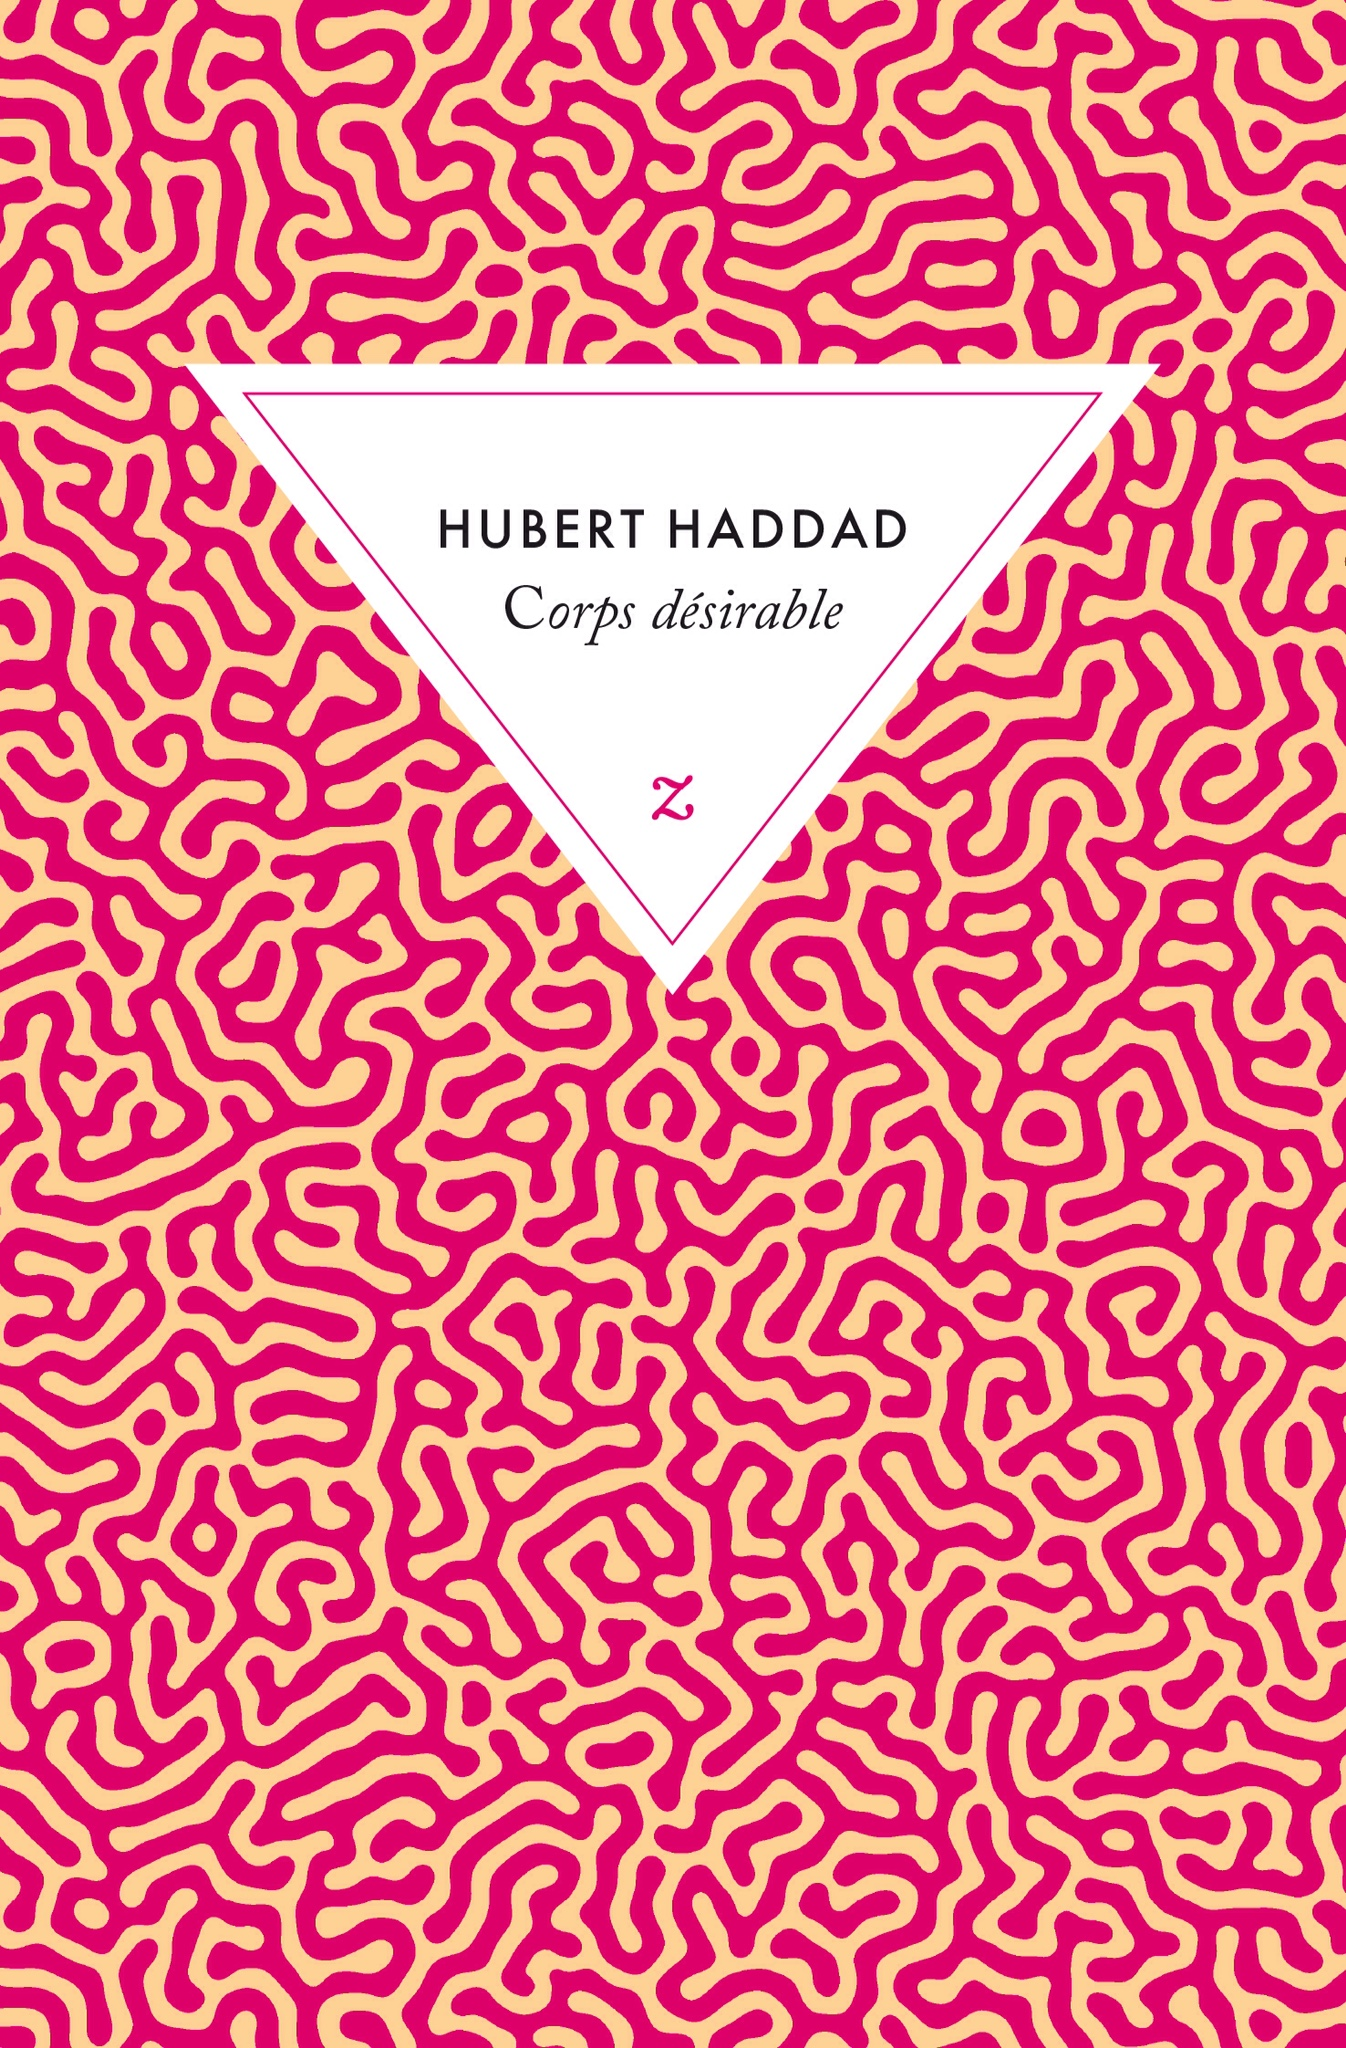 Hubert Haddad  : Corps désirable